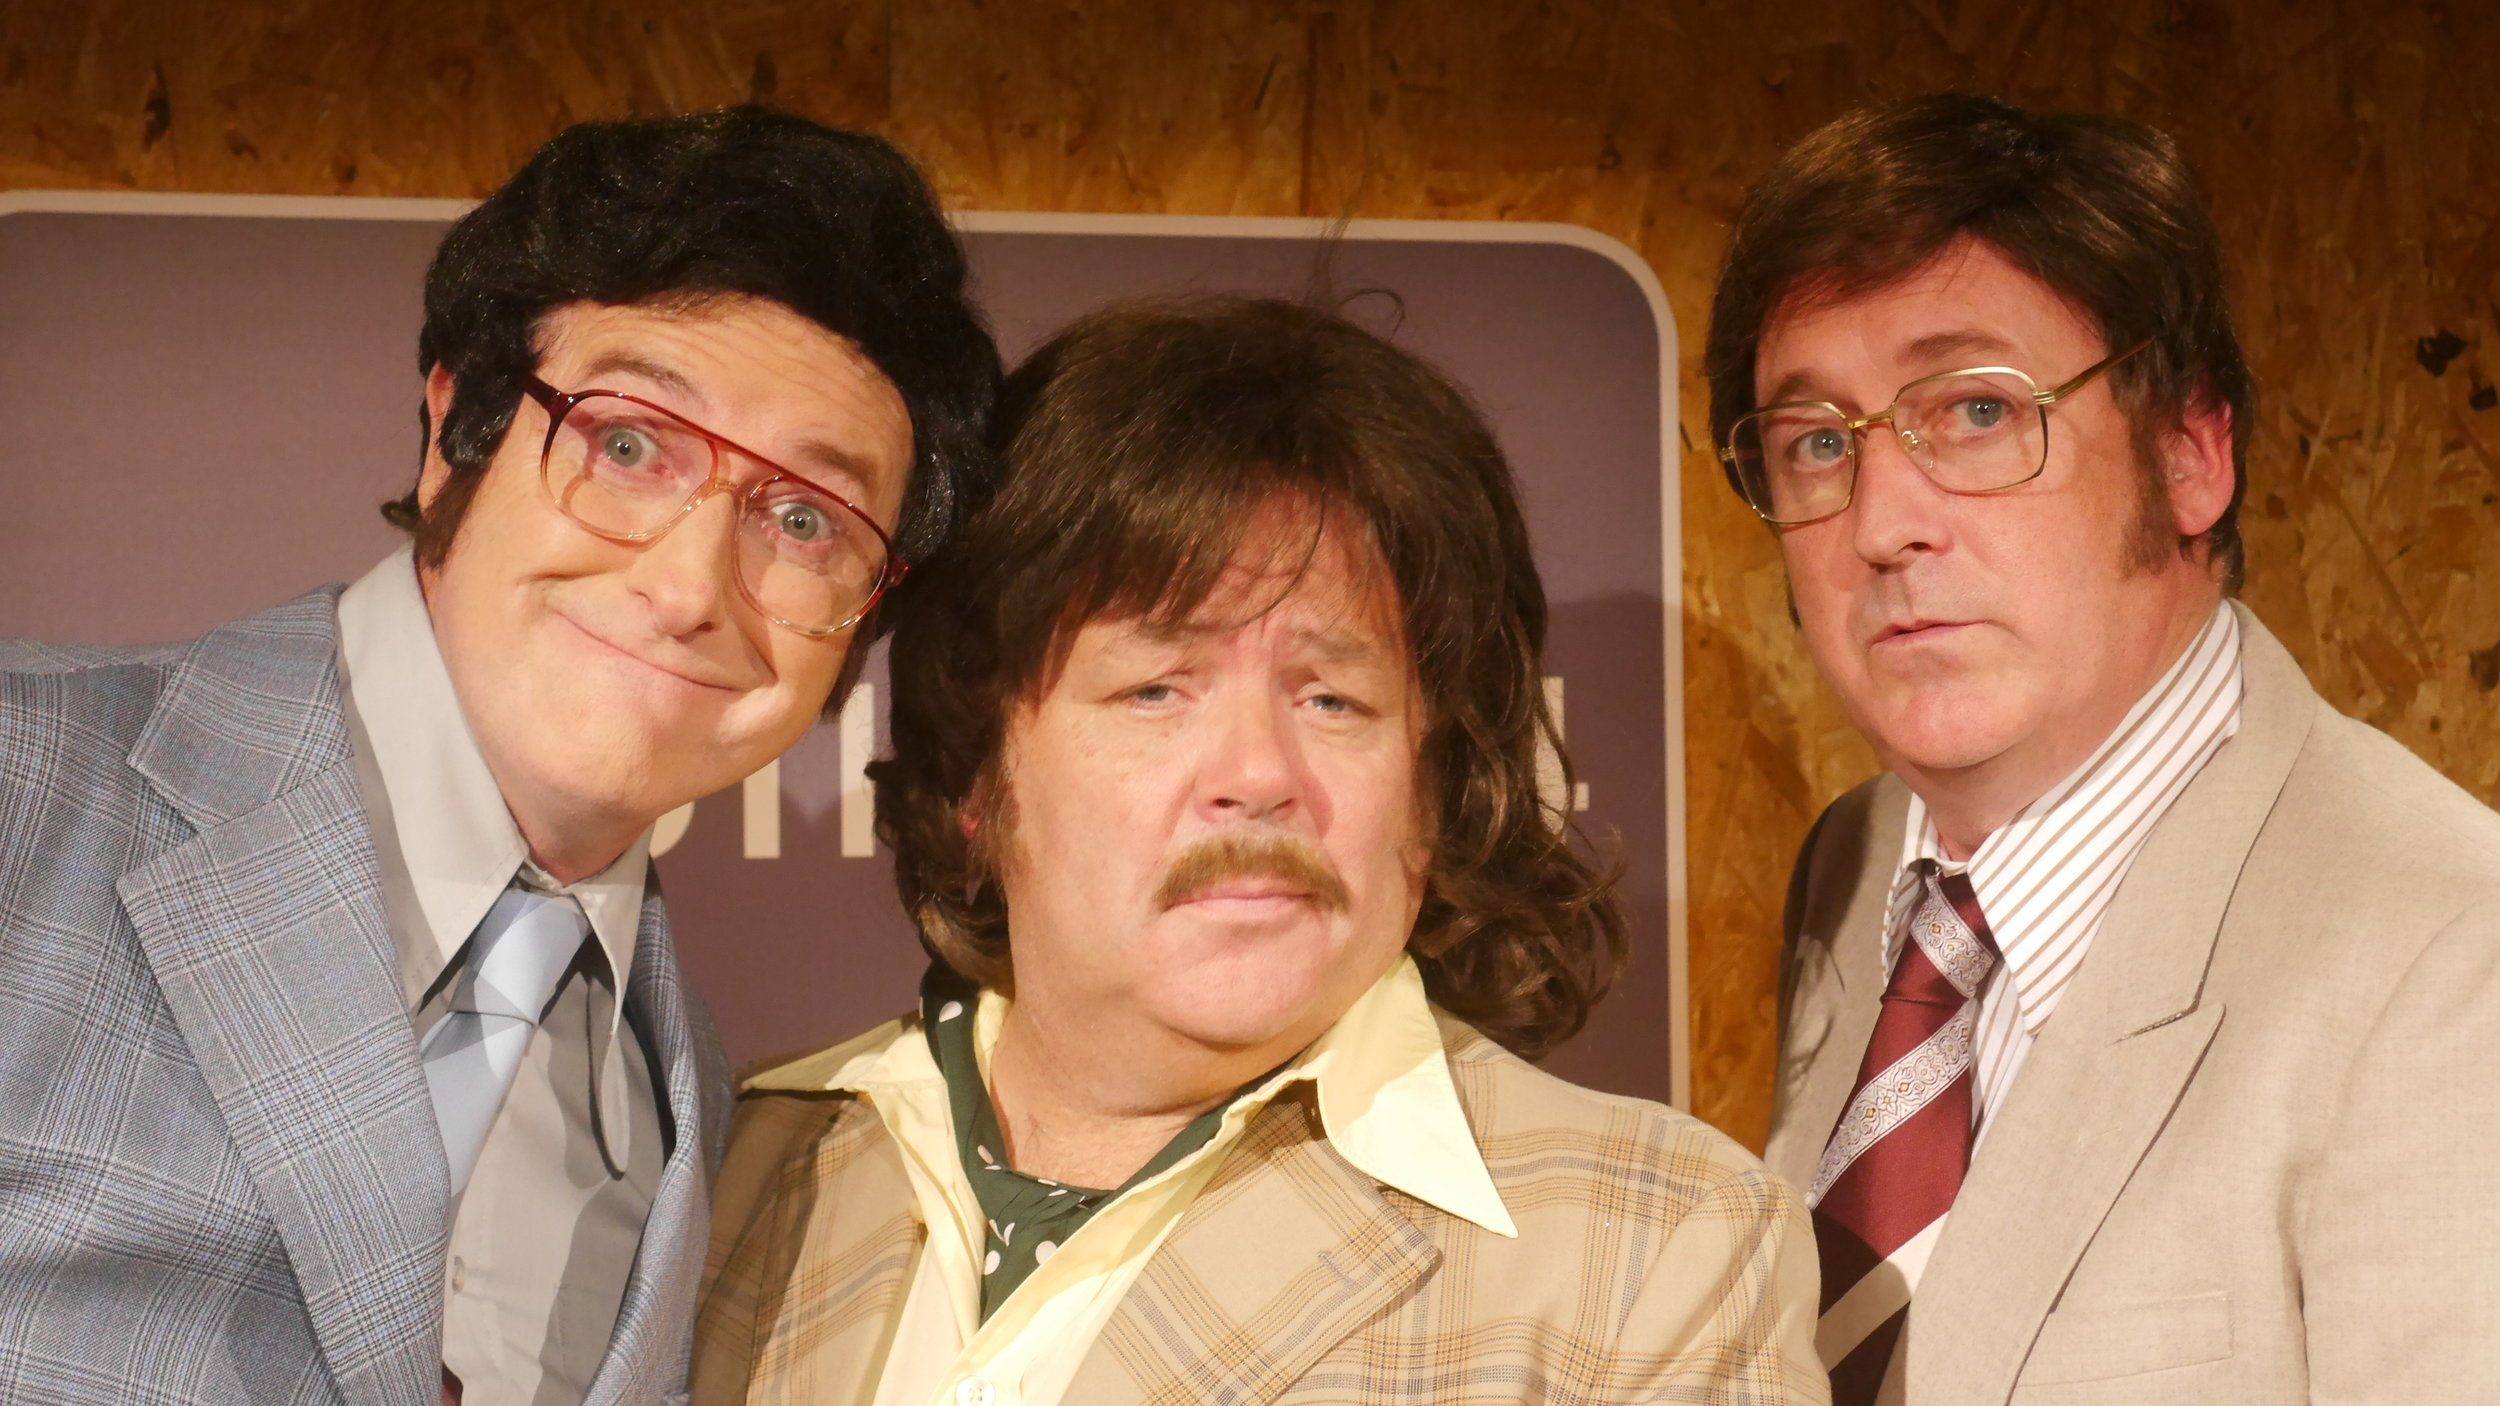 Apres Match features the trio of Barry Murphy, Risteárd Cooper, and Gary Cooke. Having first appeared on Irish screens during the 1998 World Cup Finals their satirical style proved to be an instant hit.    Taking their amazing character portrayals and jokes on tour was of course a logical progression.